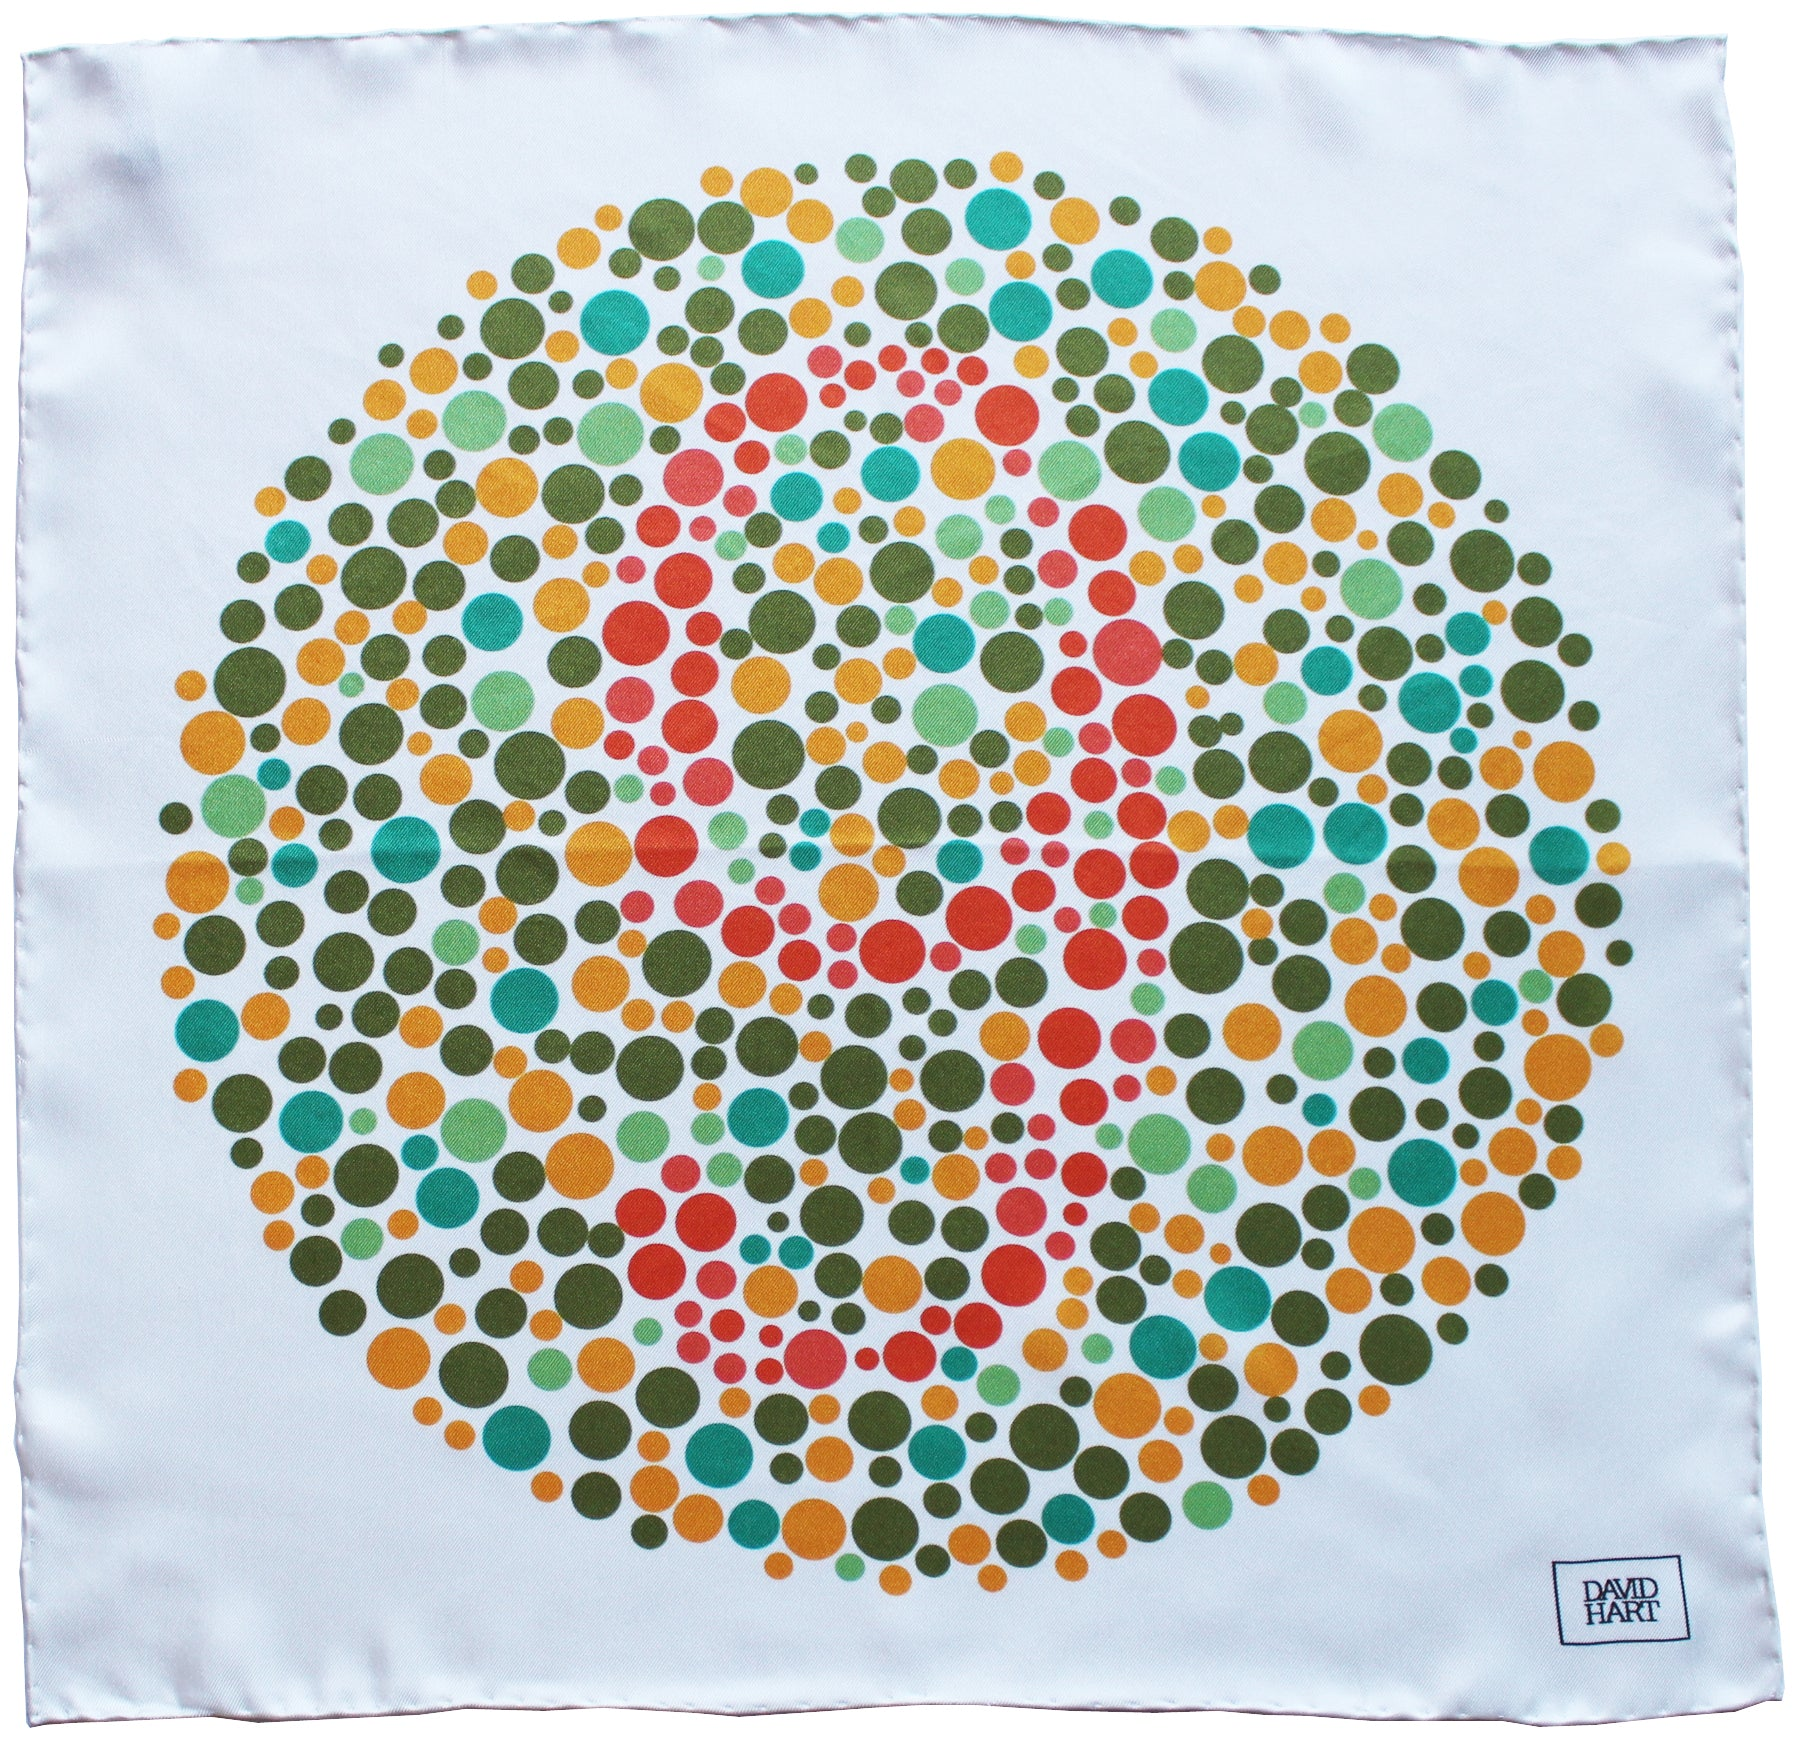 ishihara test pocket square